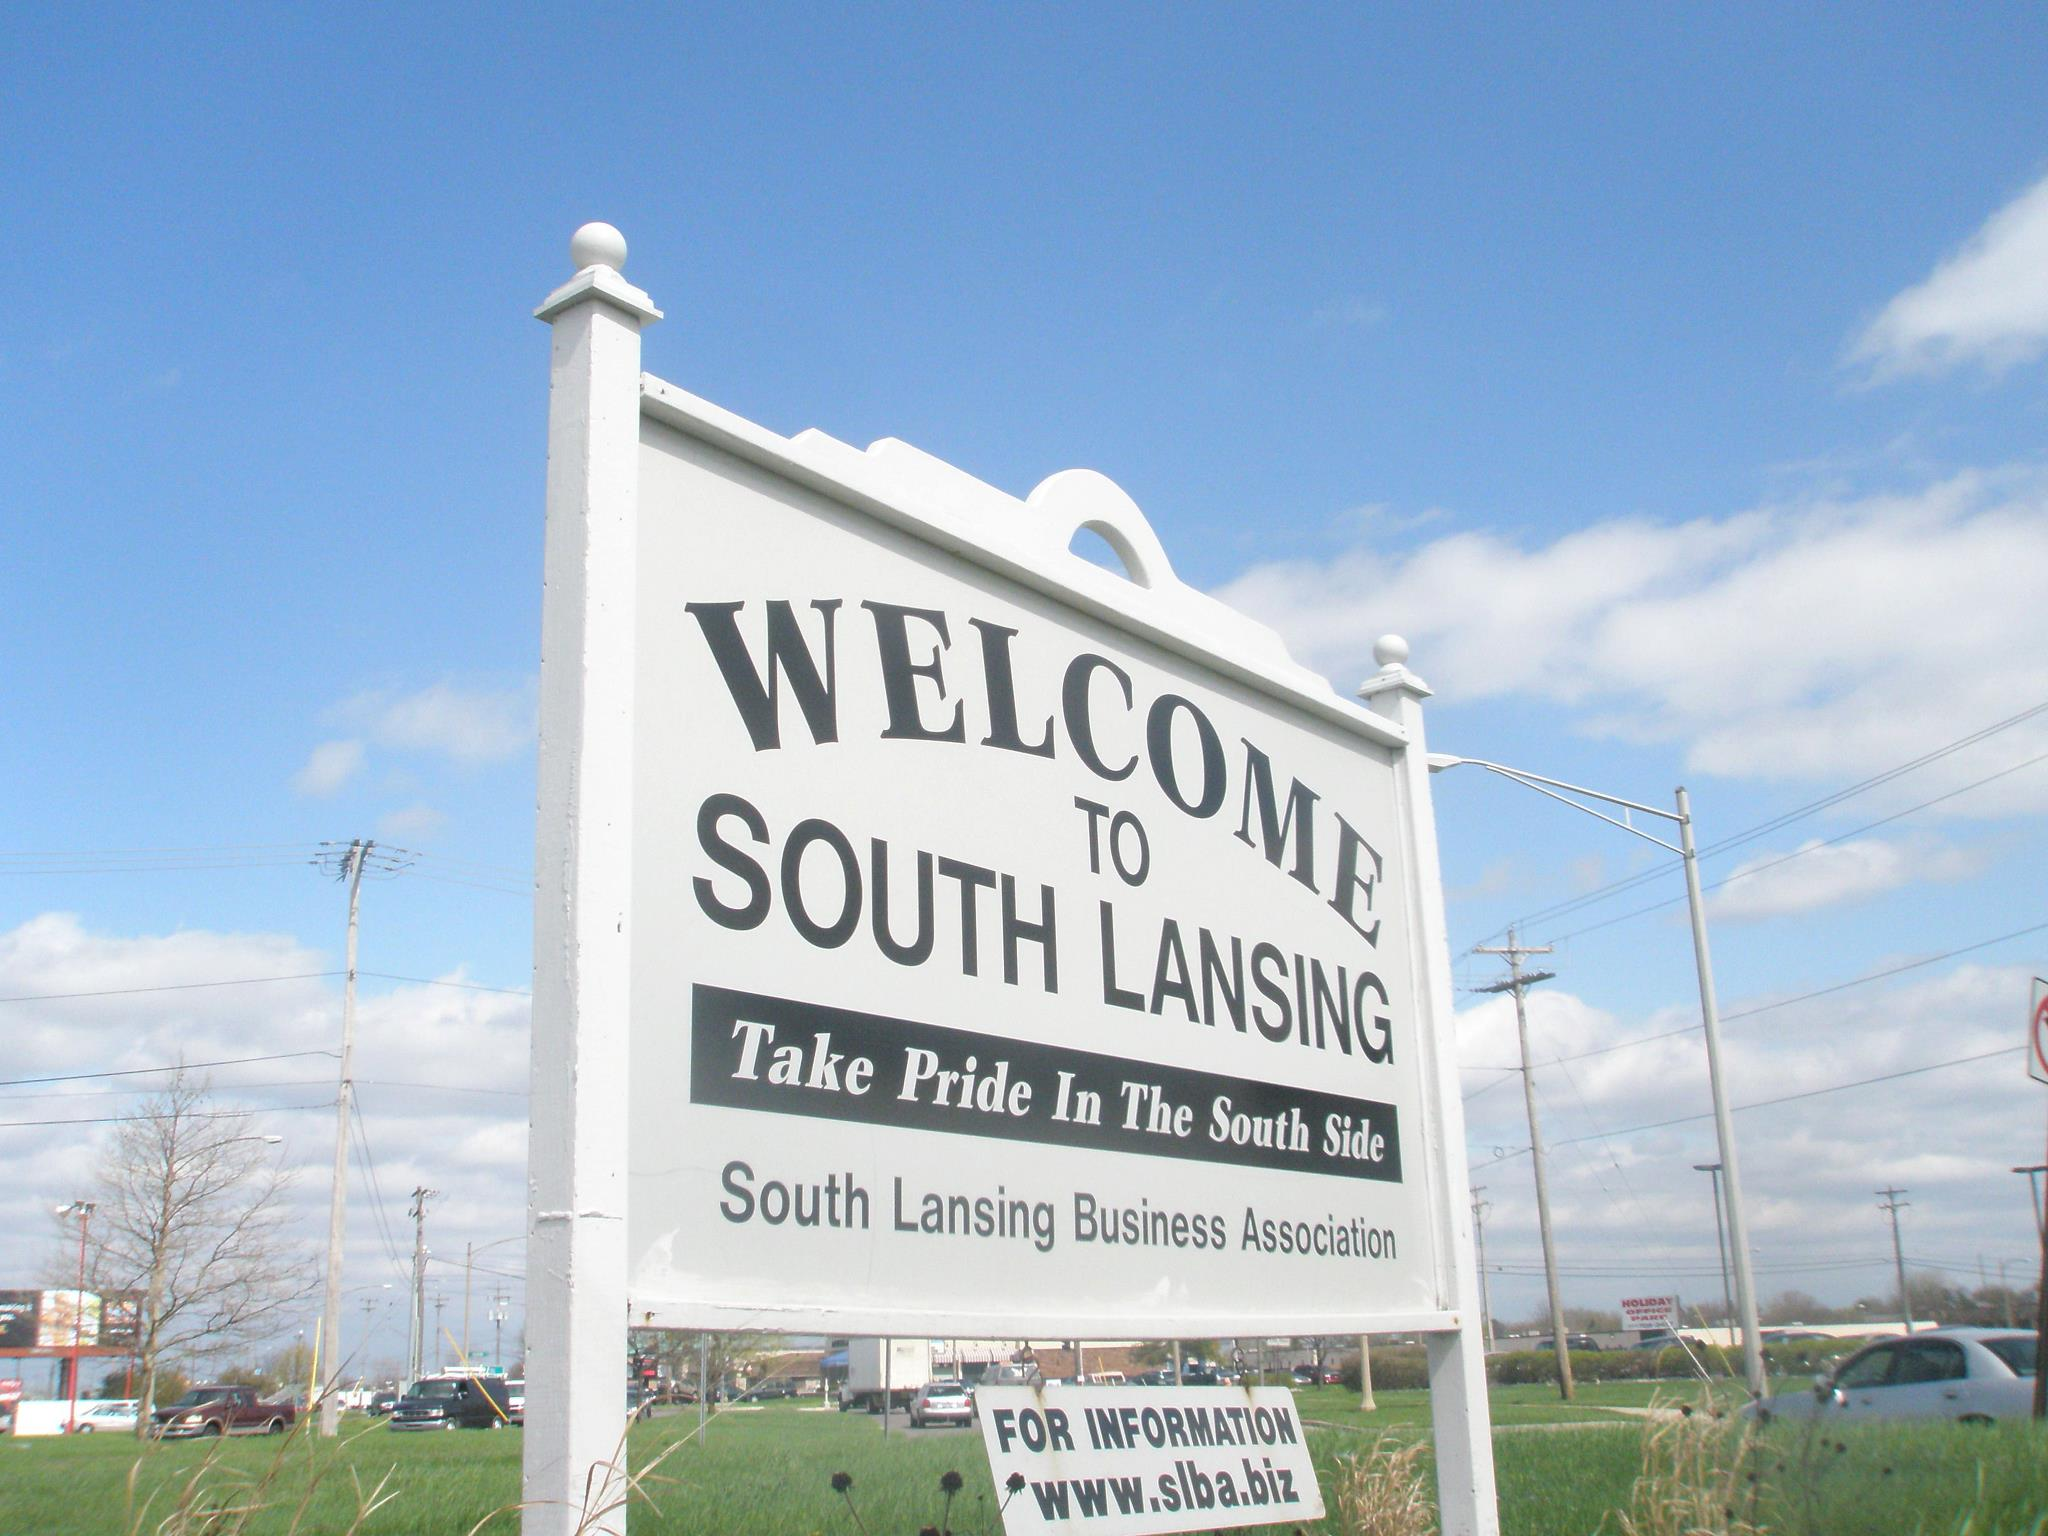 iNVEST IN sOUTH LANSING - In order for South Lansing to flourish, we need to find innovative ways to leverage our assets to attract businesses to our commercial corridors. As county commissioner, I am committed to working with my city and regional counterparts to identify and use resources to expand the variety of businesses to South Lansing.